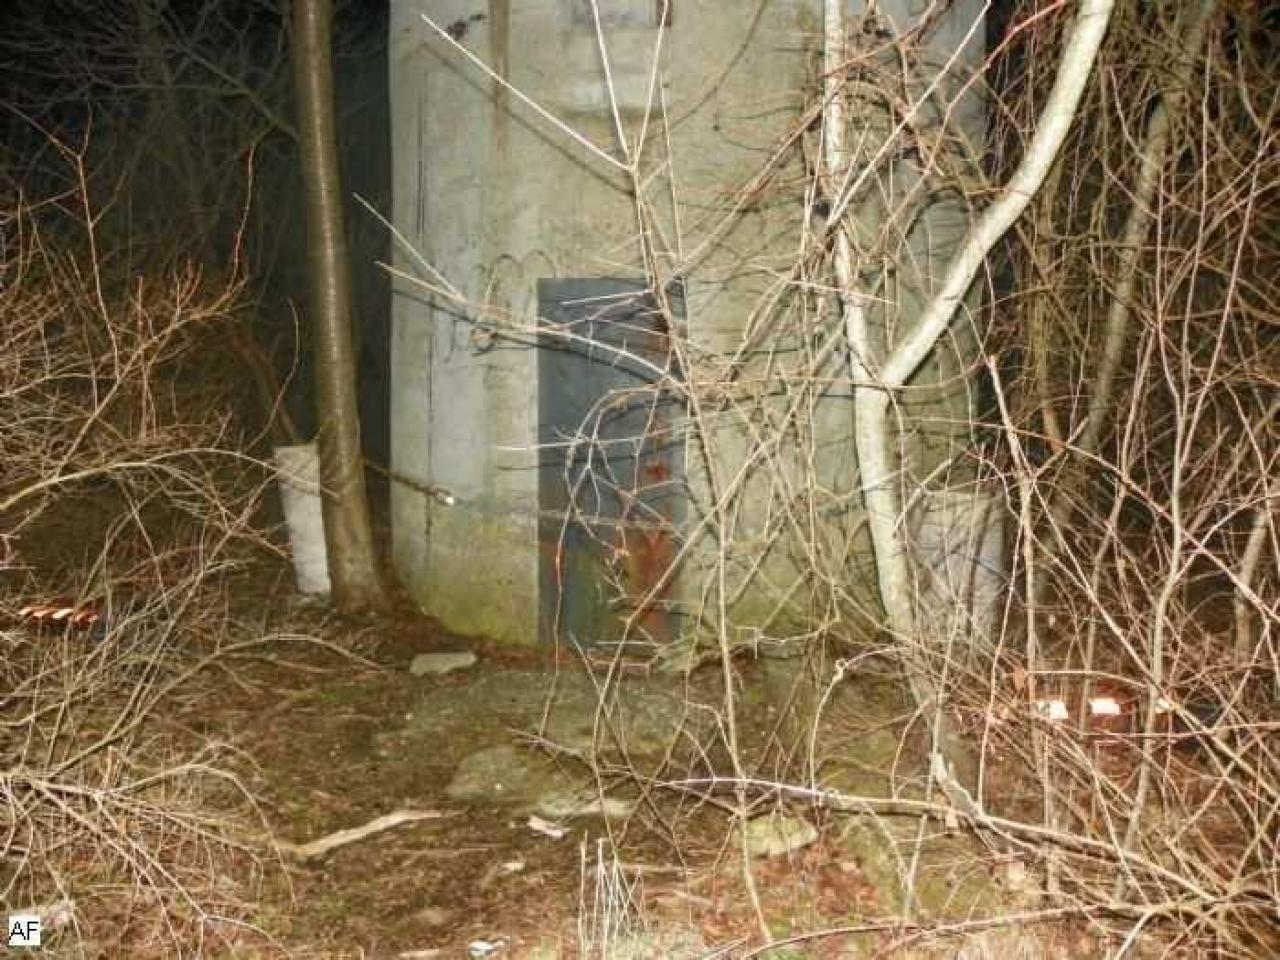 Nighttime Silo Visit - Ridgeway-Witch-Prison-Tower1.jpg